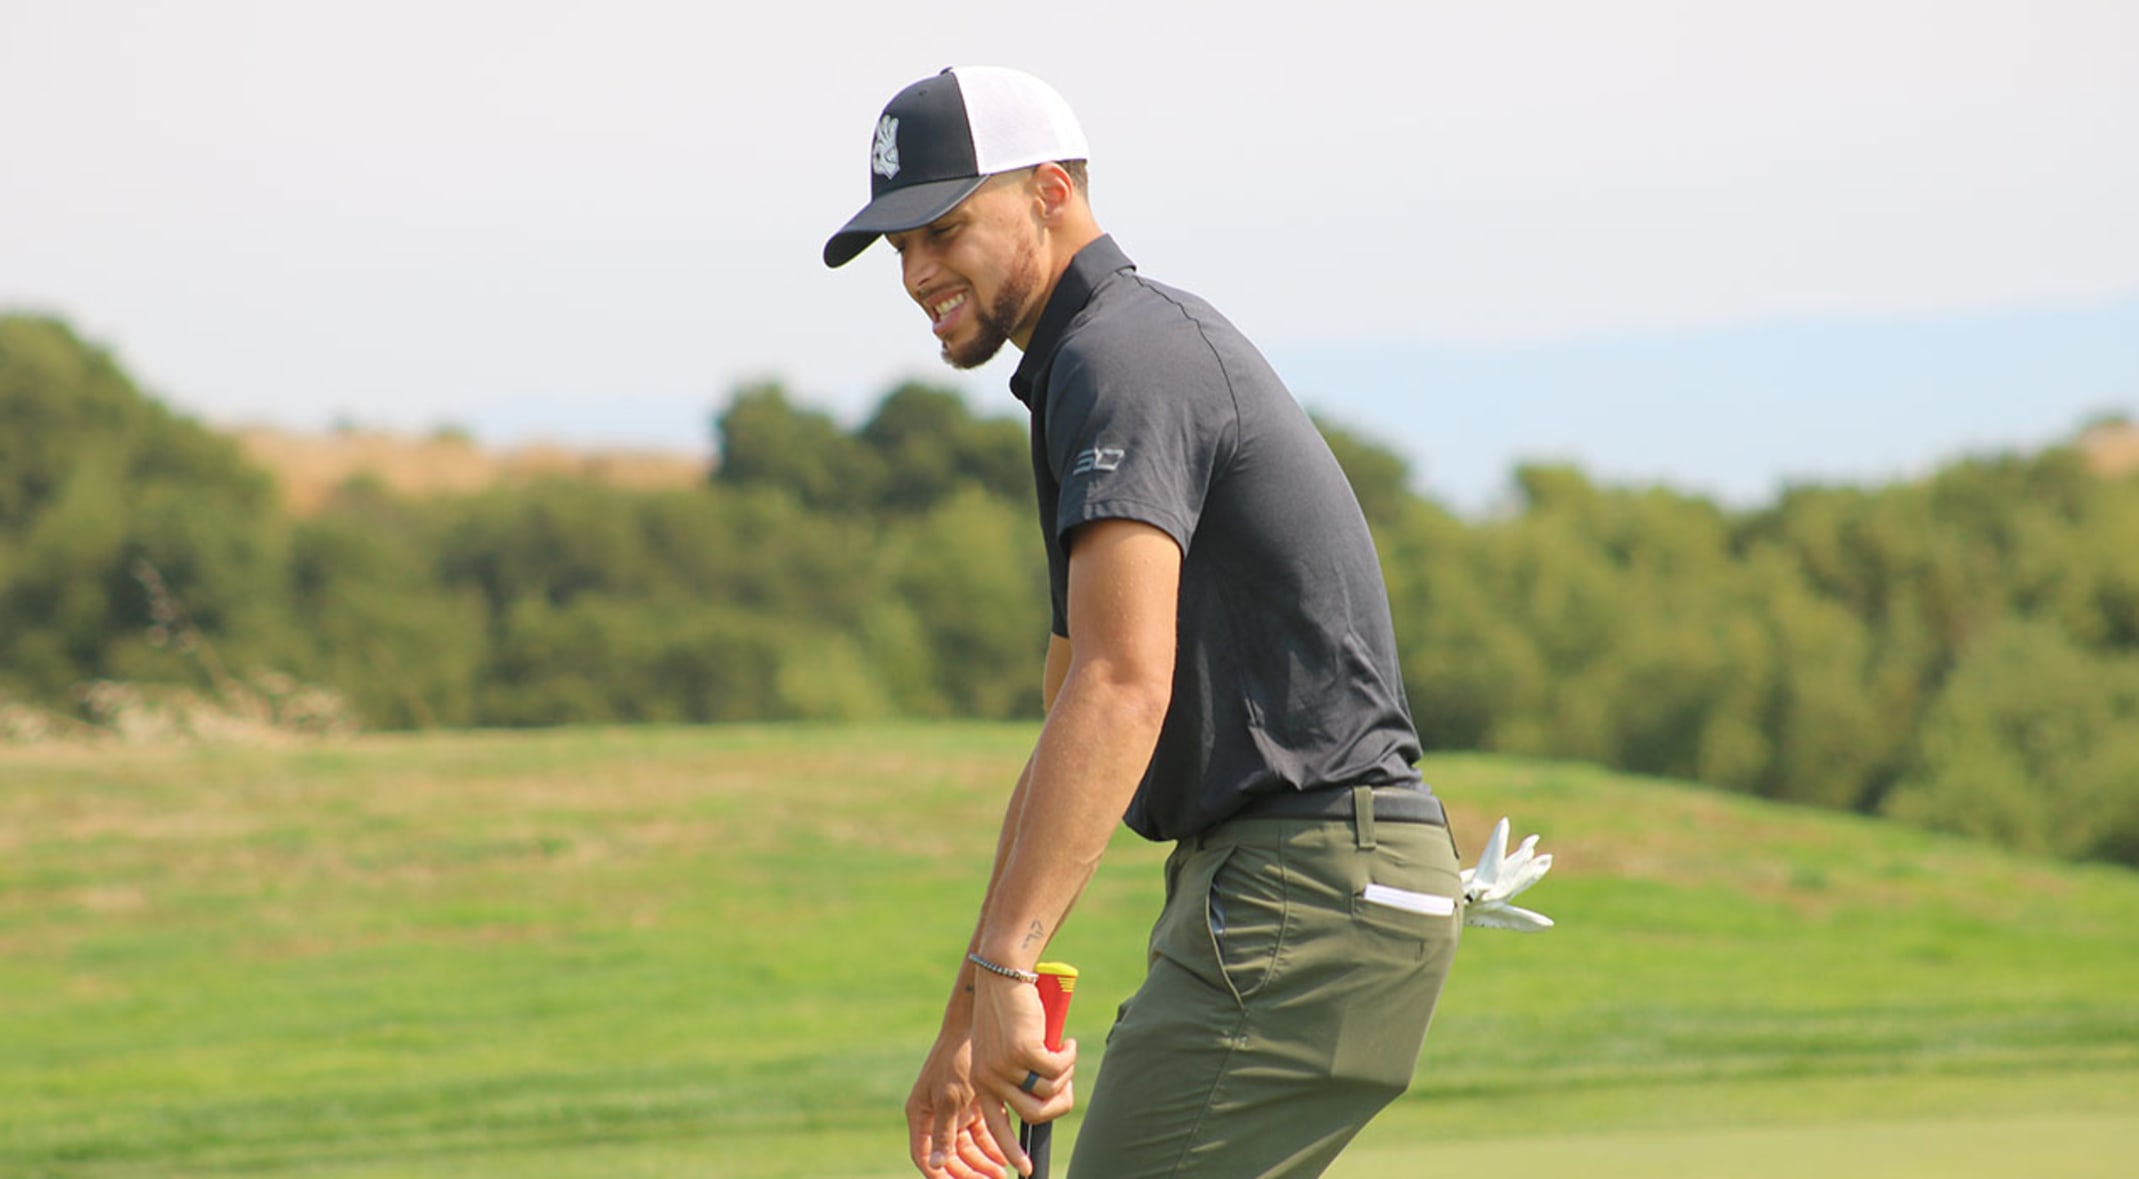 premium selection 3fdb7 7a893 Live blog: Stephen Curry at Ellie Mae Classic, Round 1